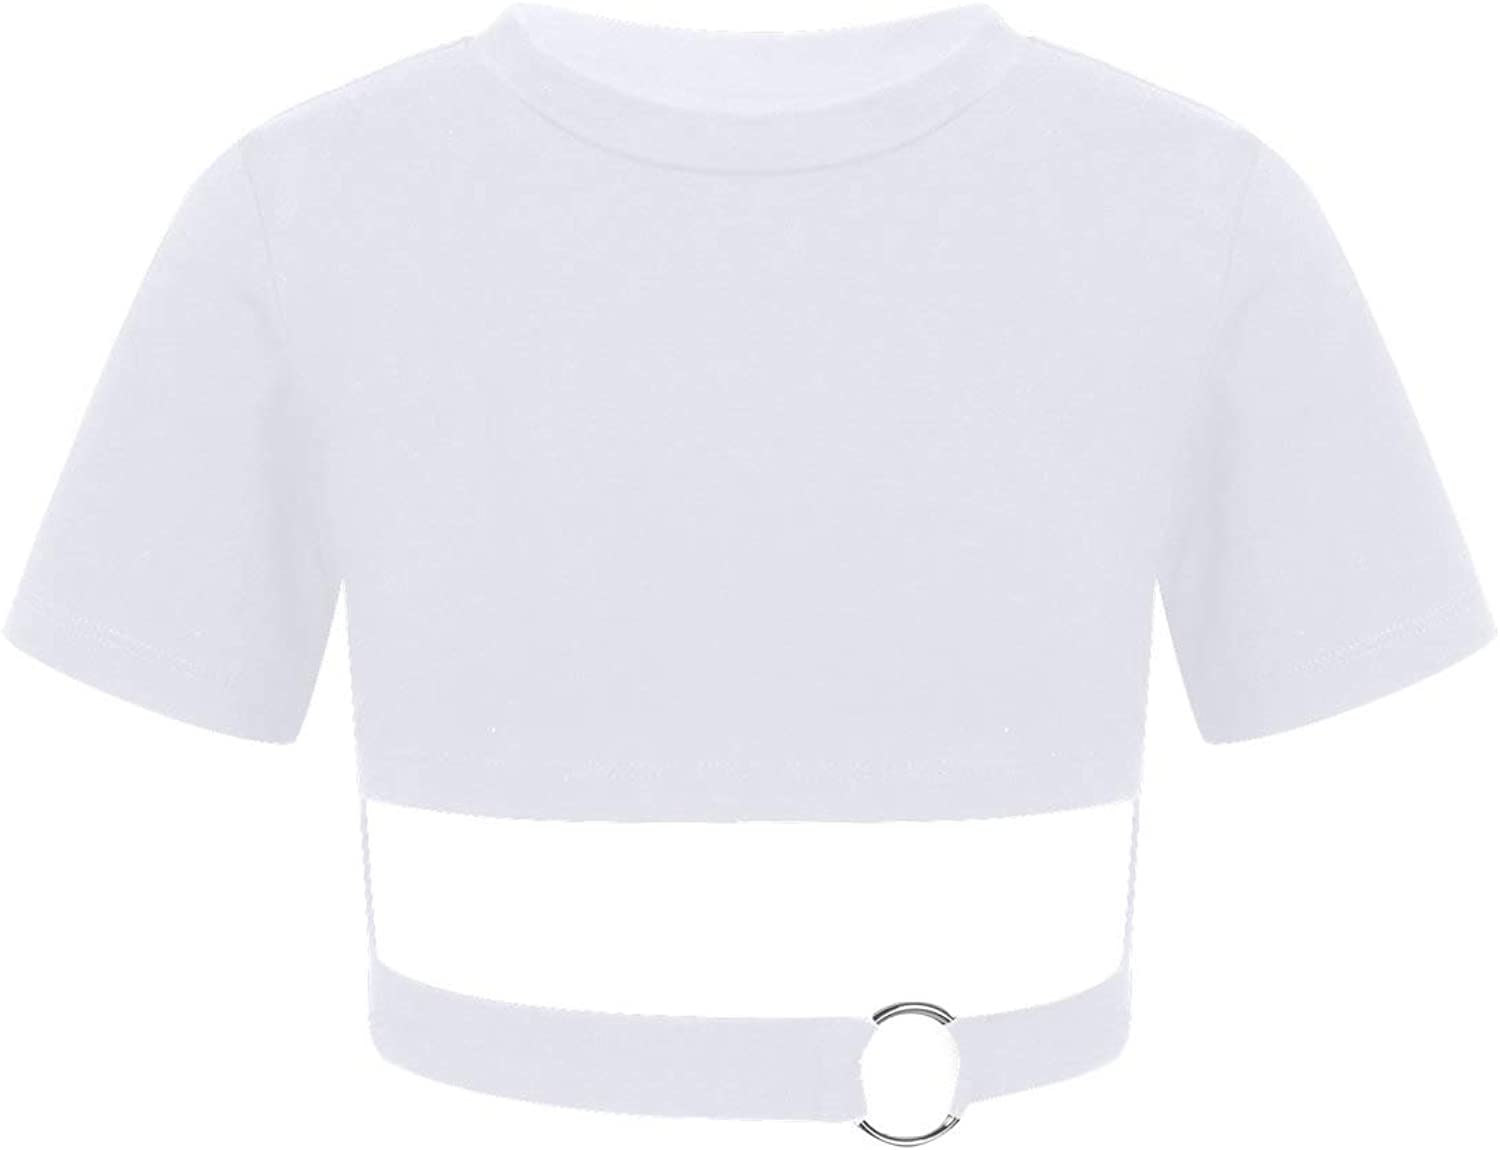 Yeahdor Kids Girls Short Sleeve Crop Tops Athletic Cotton Tops Hollow Out Dance Yoga Exercise T-Shirts Activewear